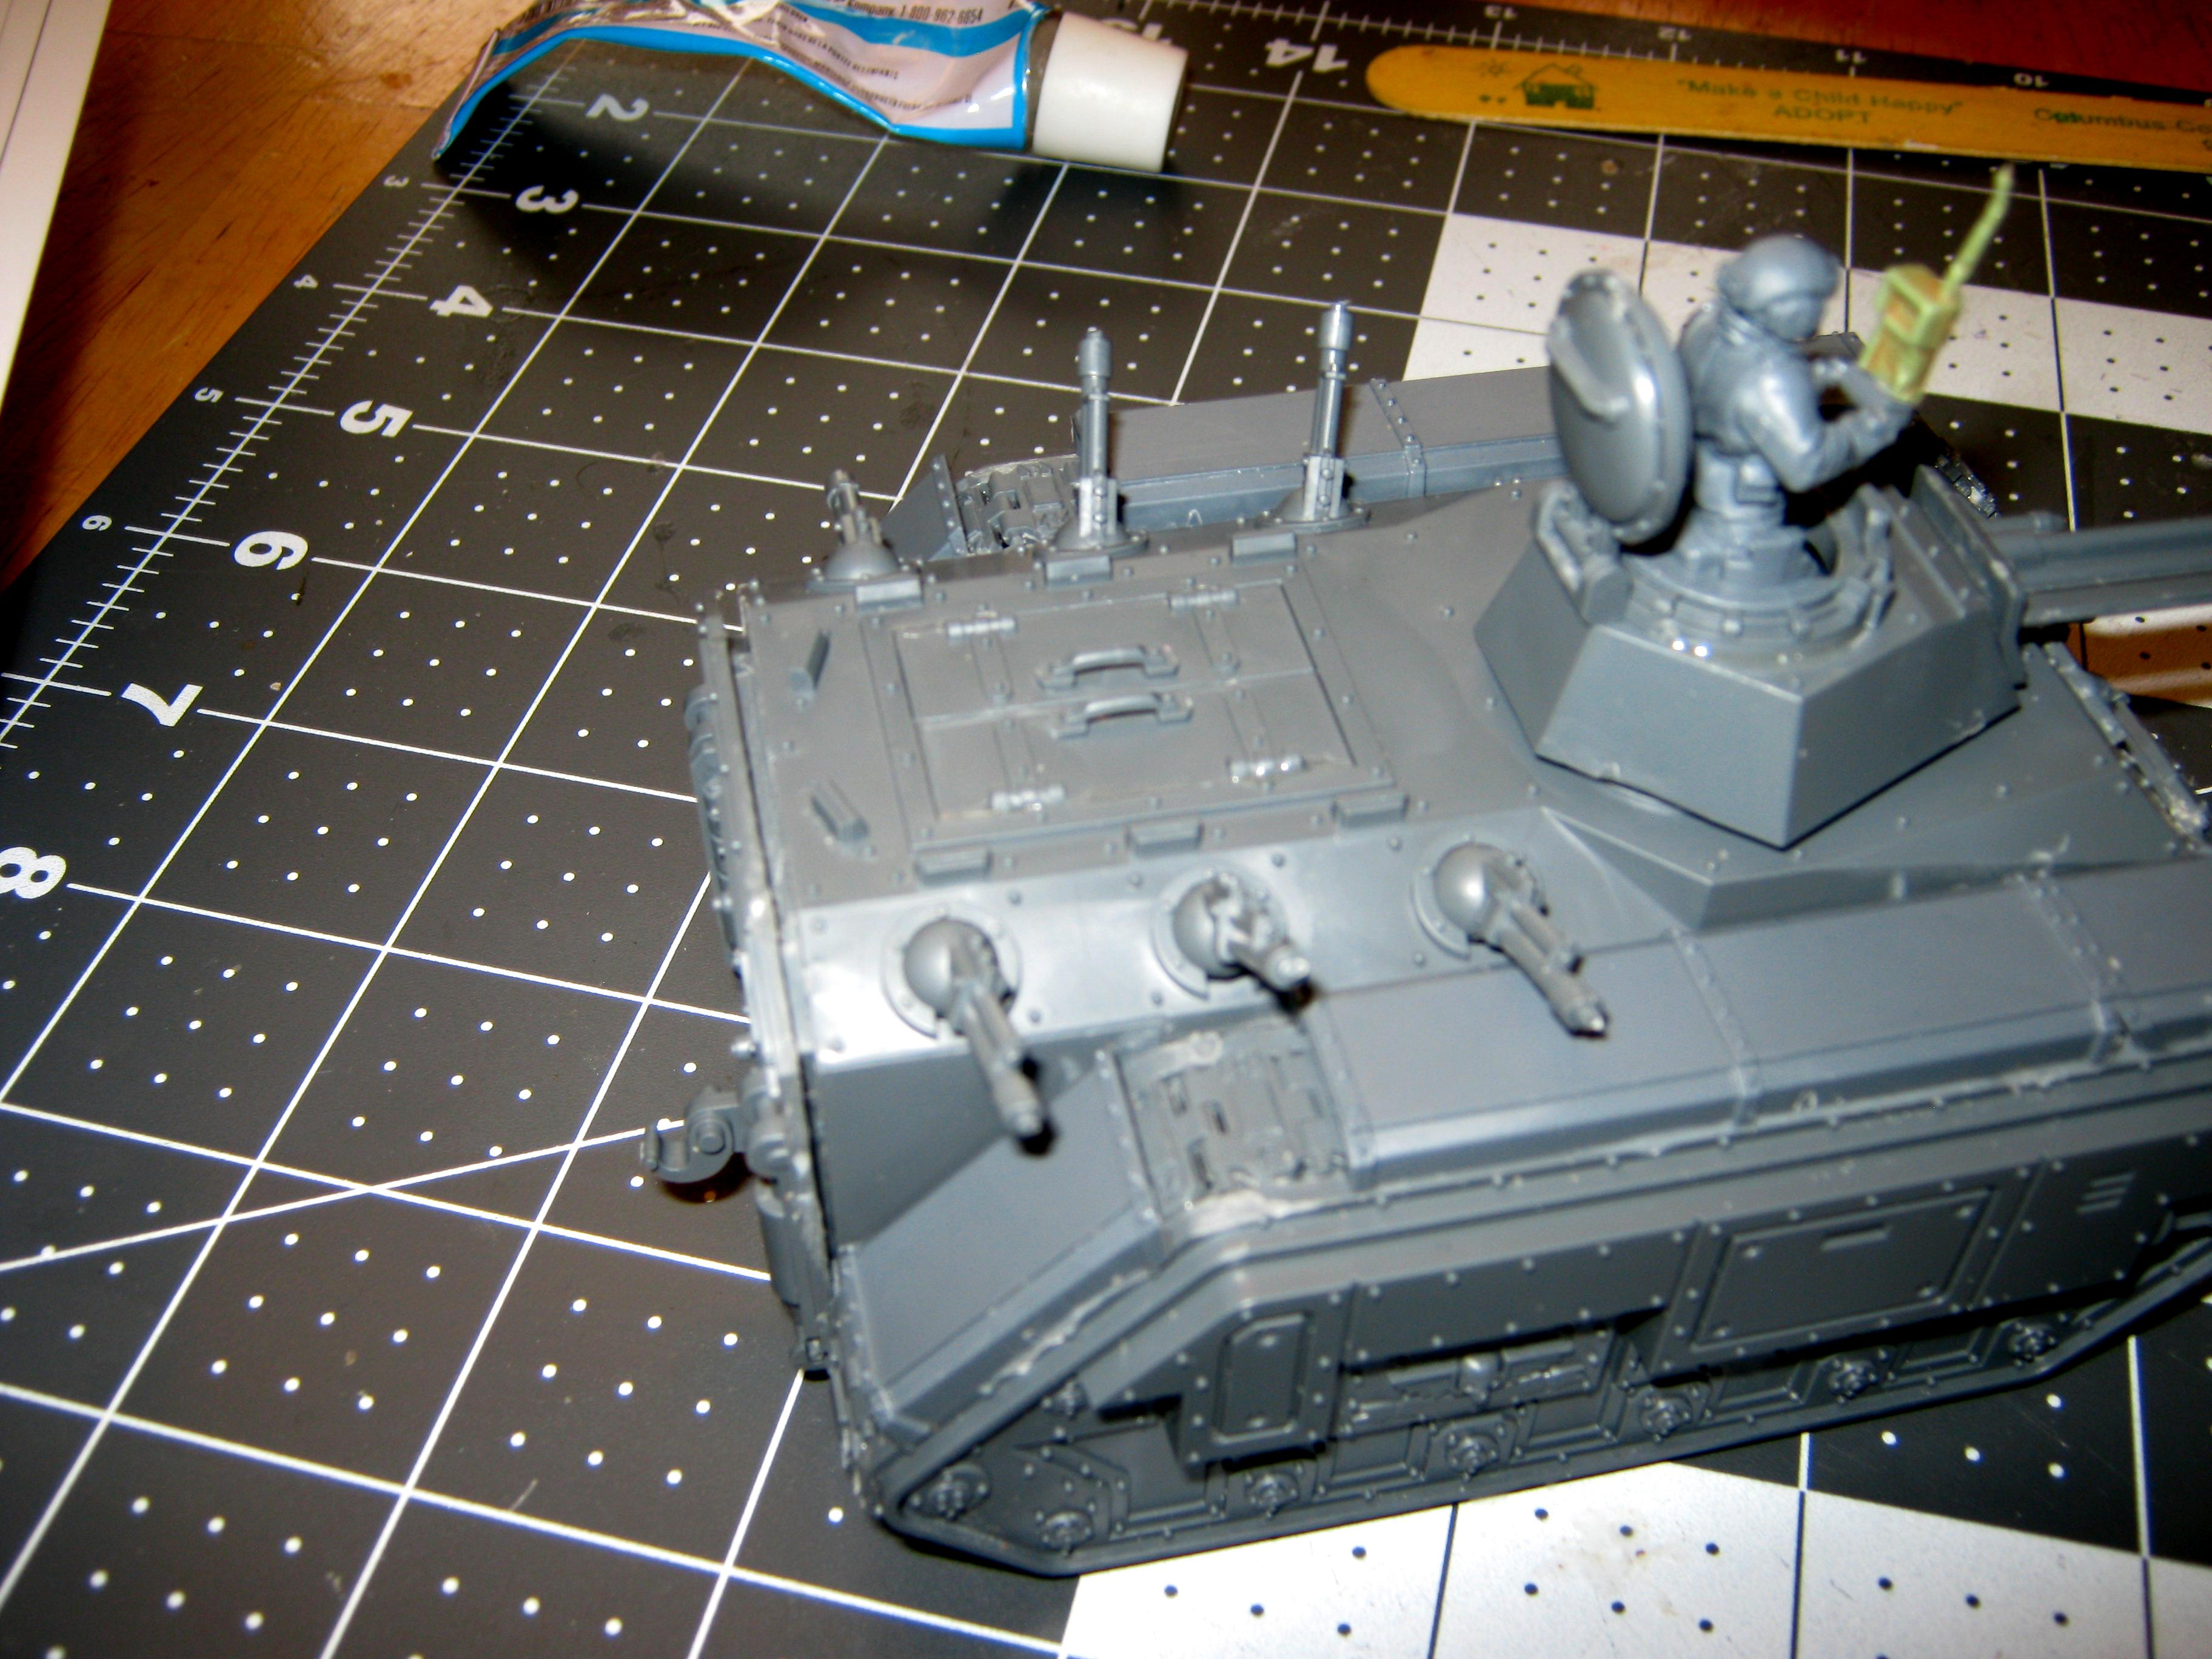 Apc, Armored Personnel Carrier, Astra Militarum, Chimera, Ifv, Imperial, Imperial Guard, Infantry Fighting Vehicle, Transport